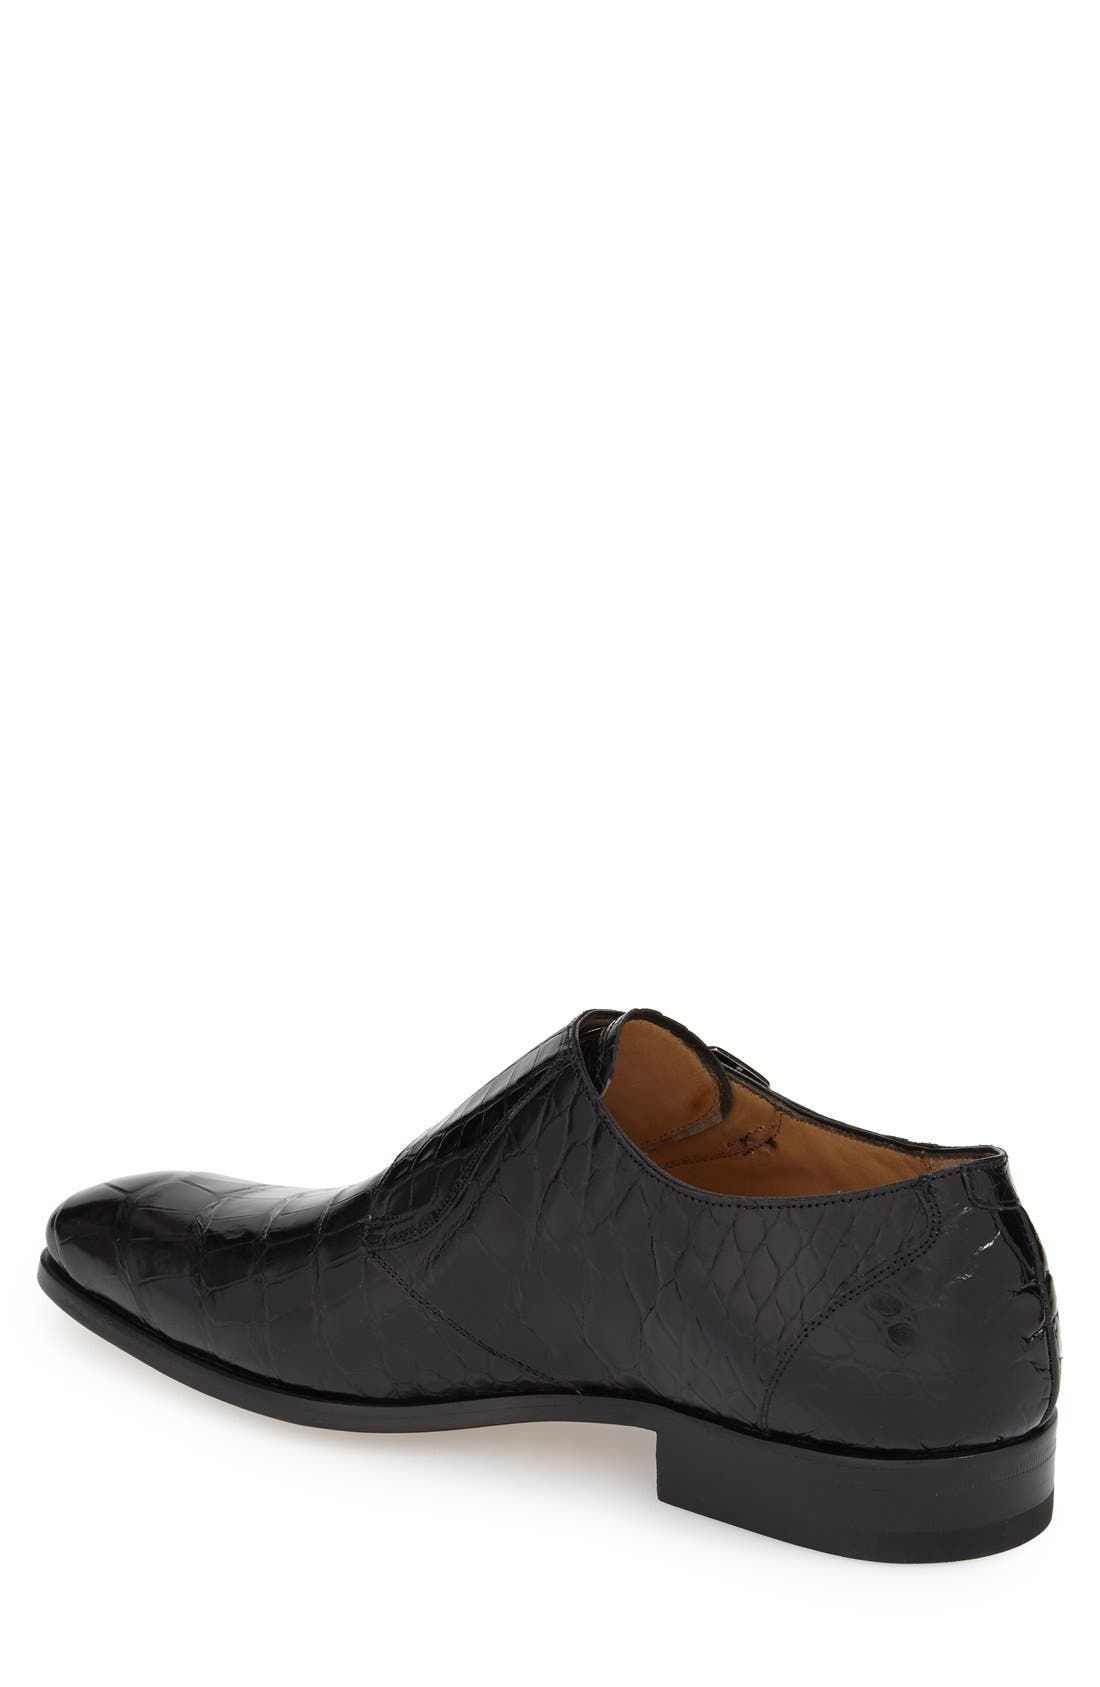 'Agra' Double Monk Strap Shoe,                             Alternate thumbnail 3, color,